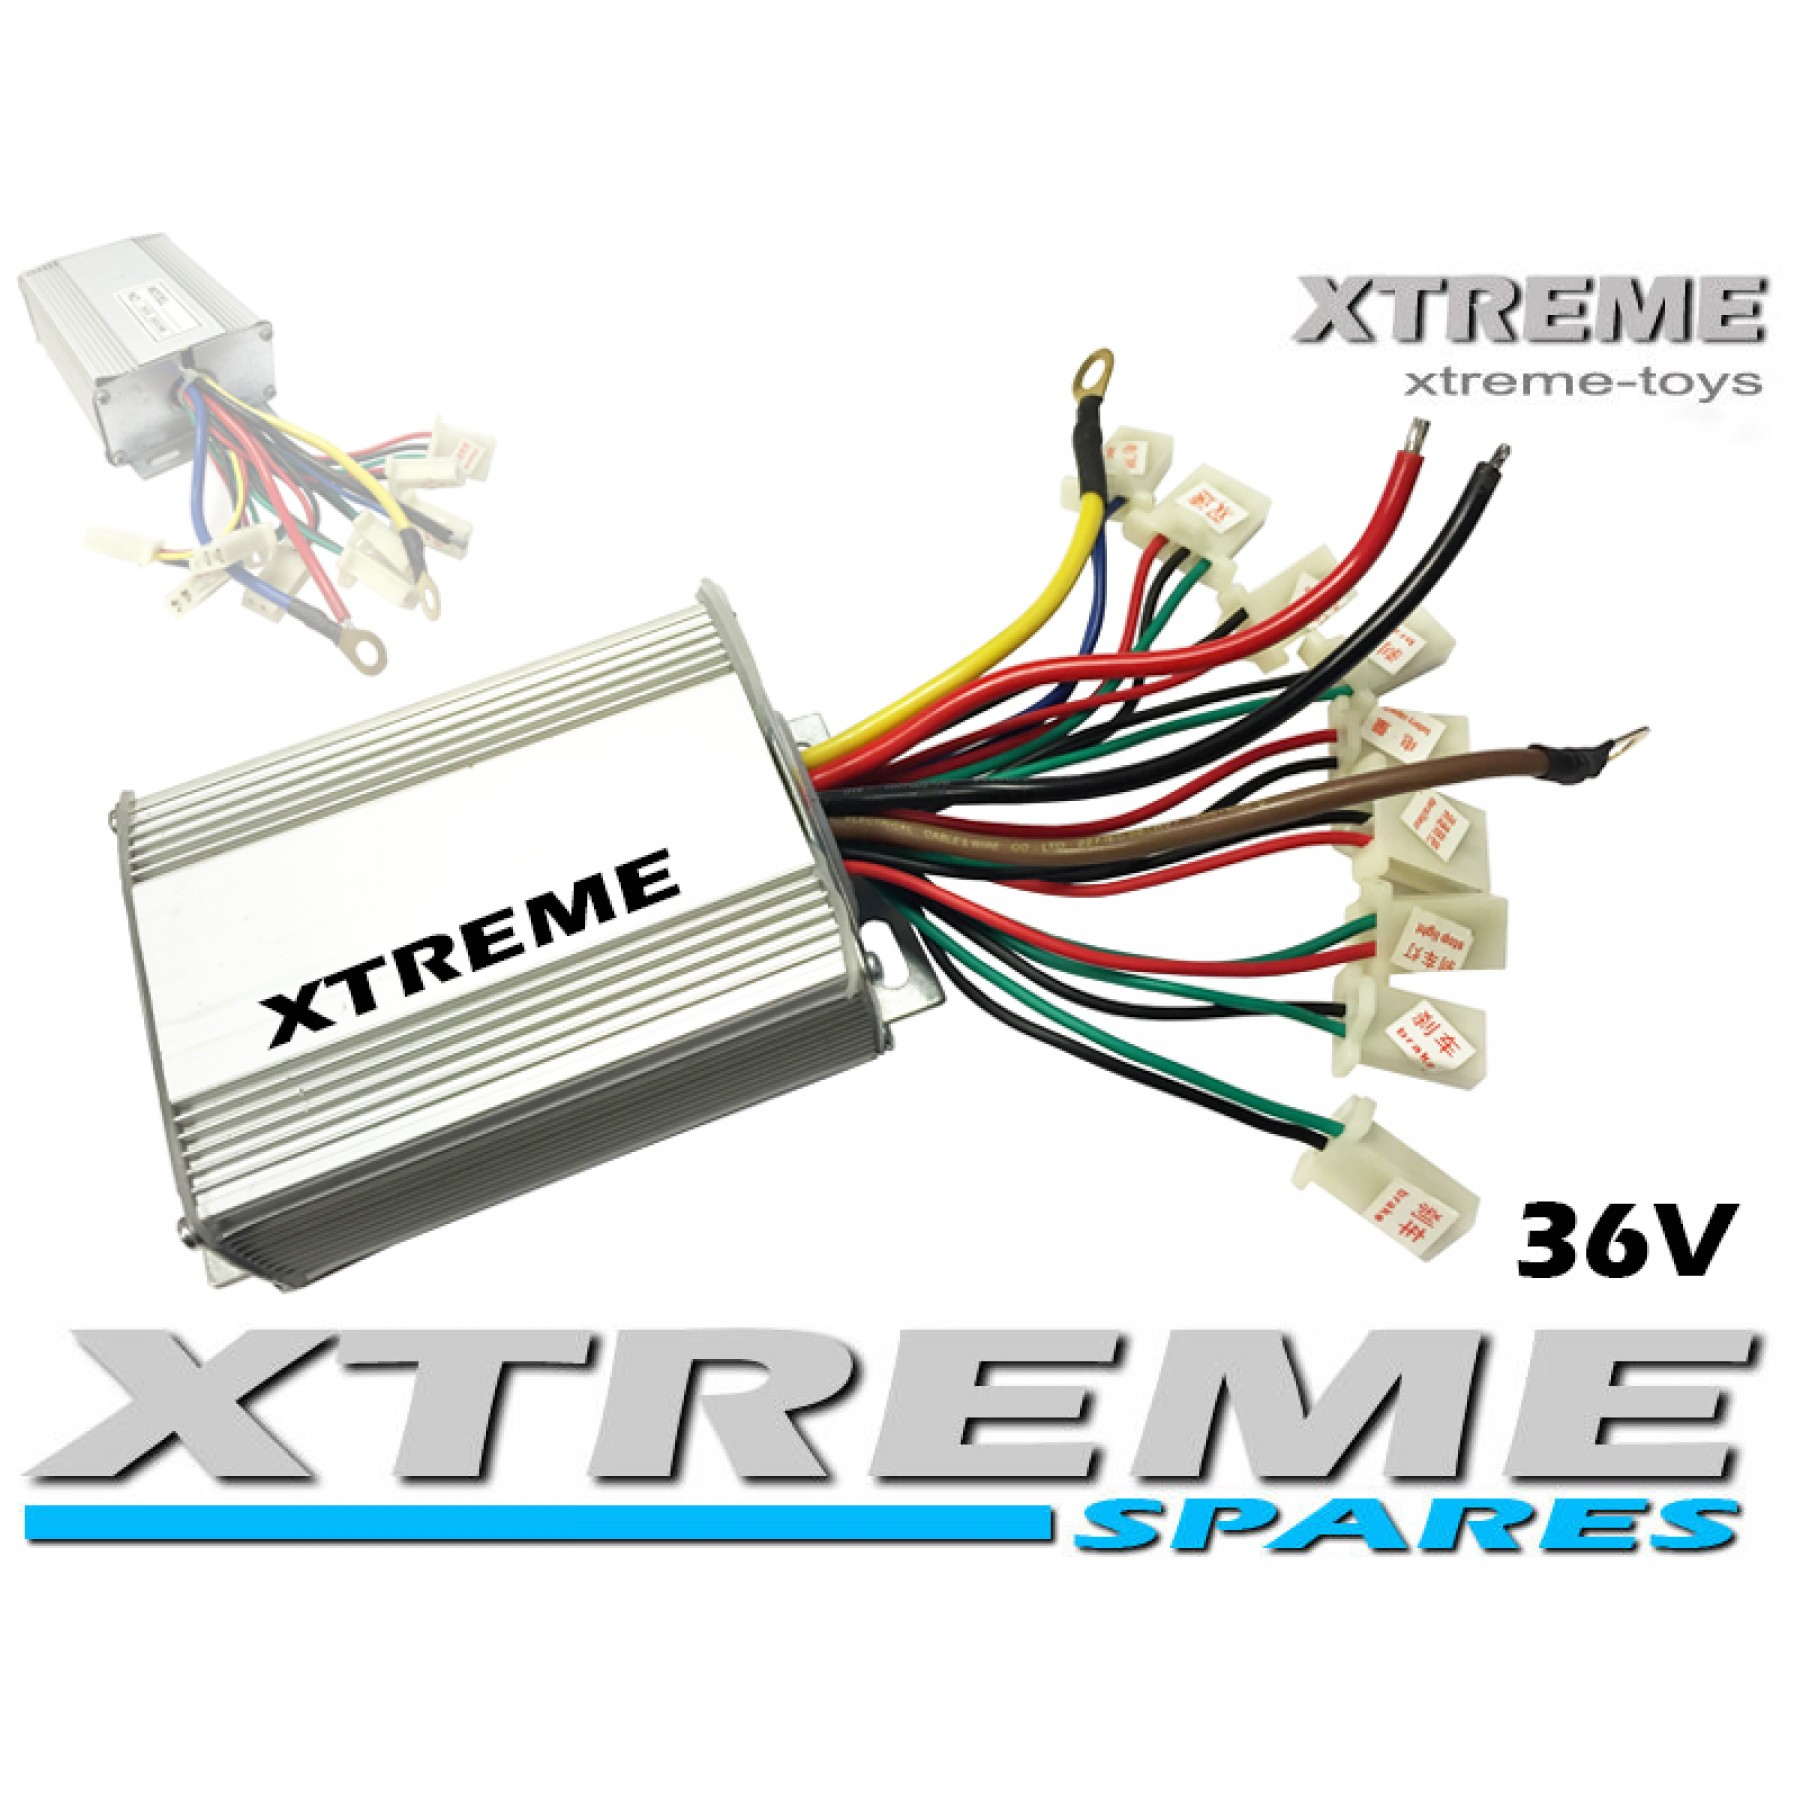 Xtreme Toys Evo E Bike 24v Wiring Diagram Electric Mini Quad Speed Controller 36v 800w Atv Monster Type 2